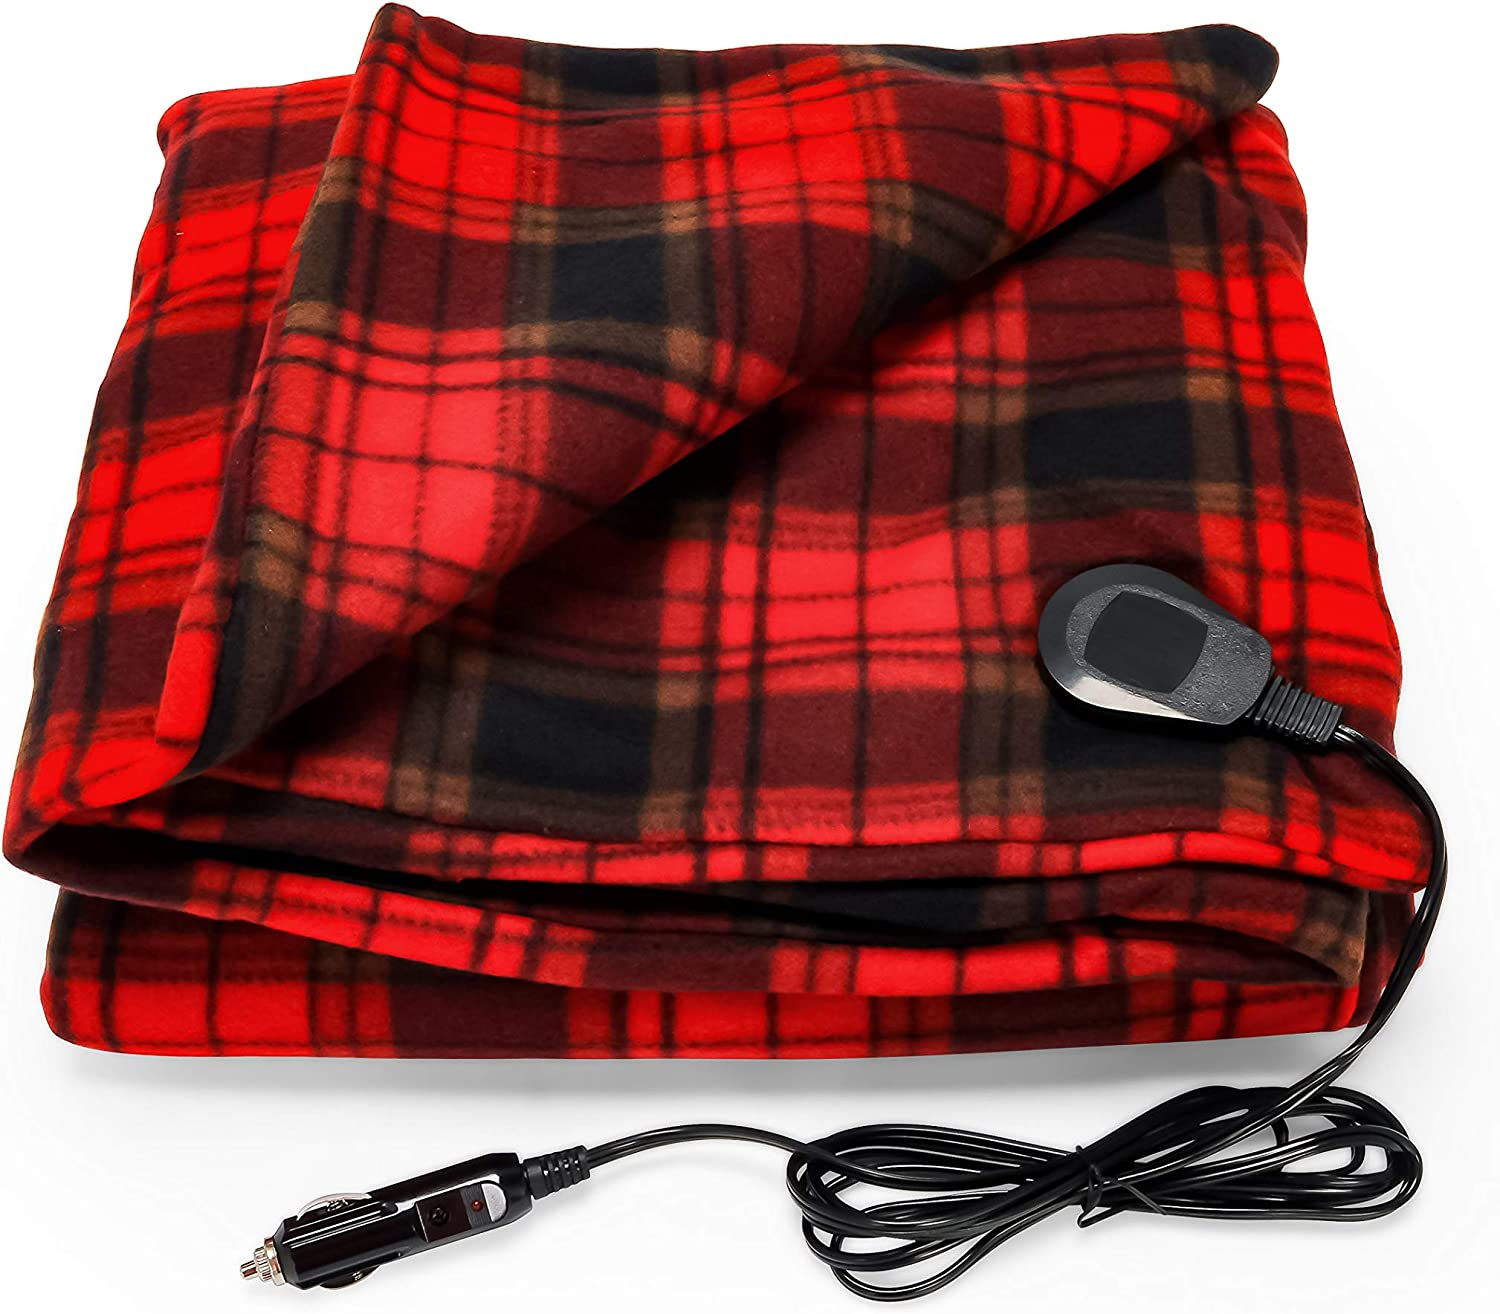 Camco Heated Blanket for Cars